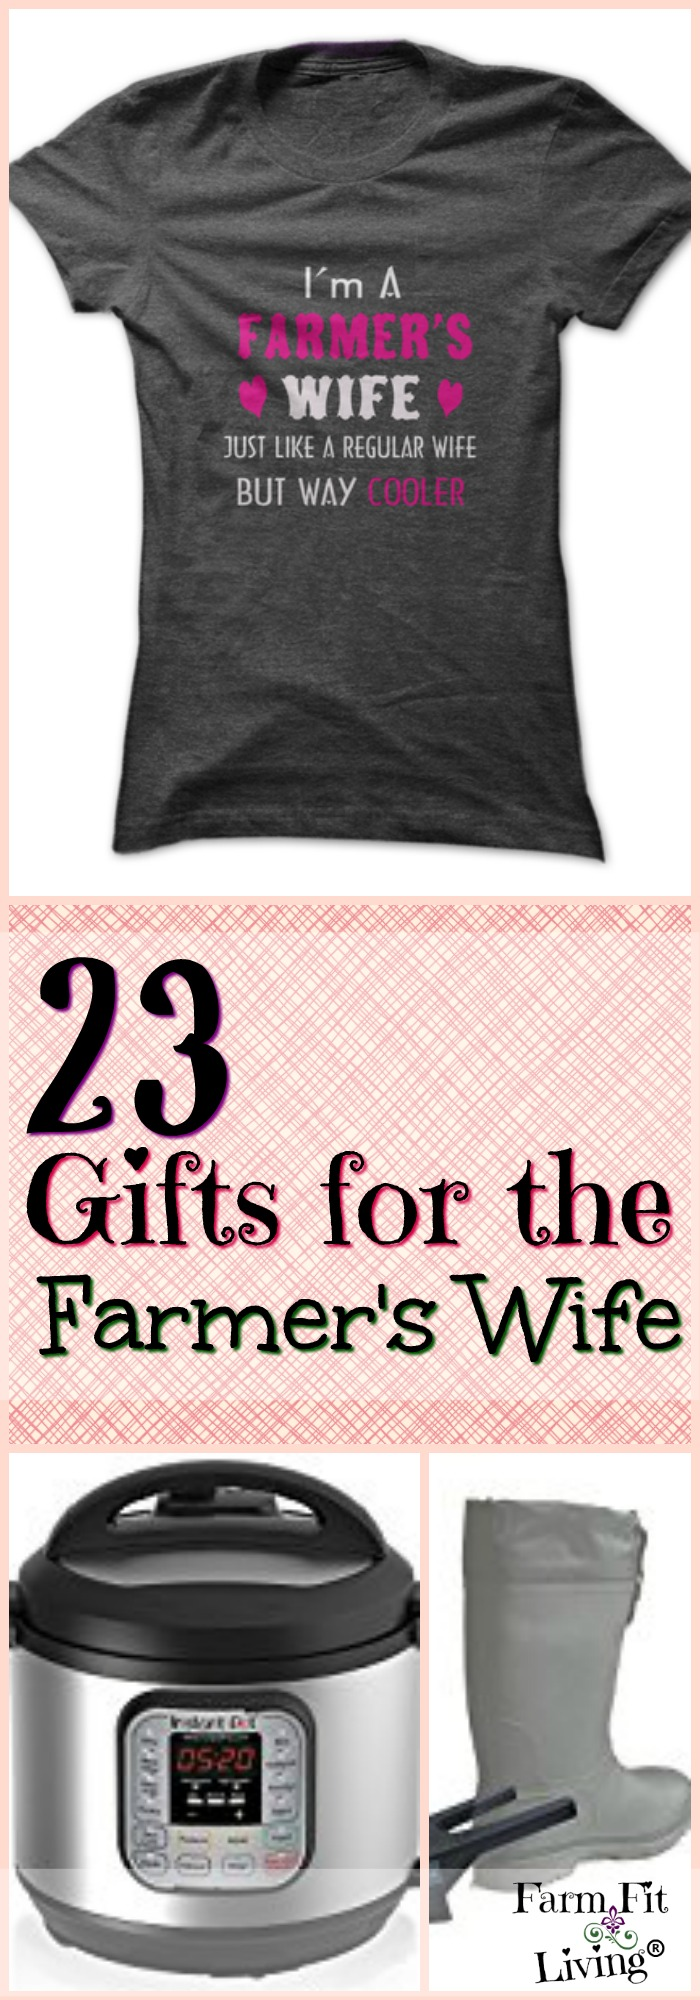 Do you need gift ideas for the farmer's wife that are sure to wow her? Here are 23 ideas that will save her time, money and help her find purpose.